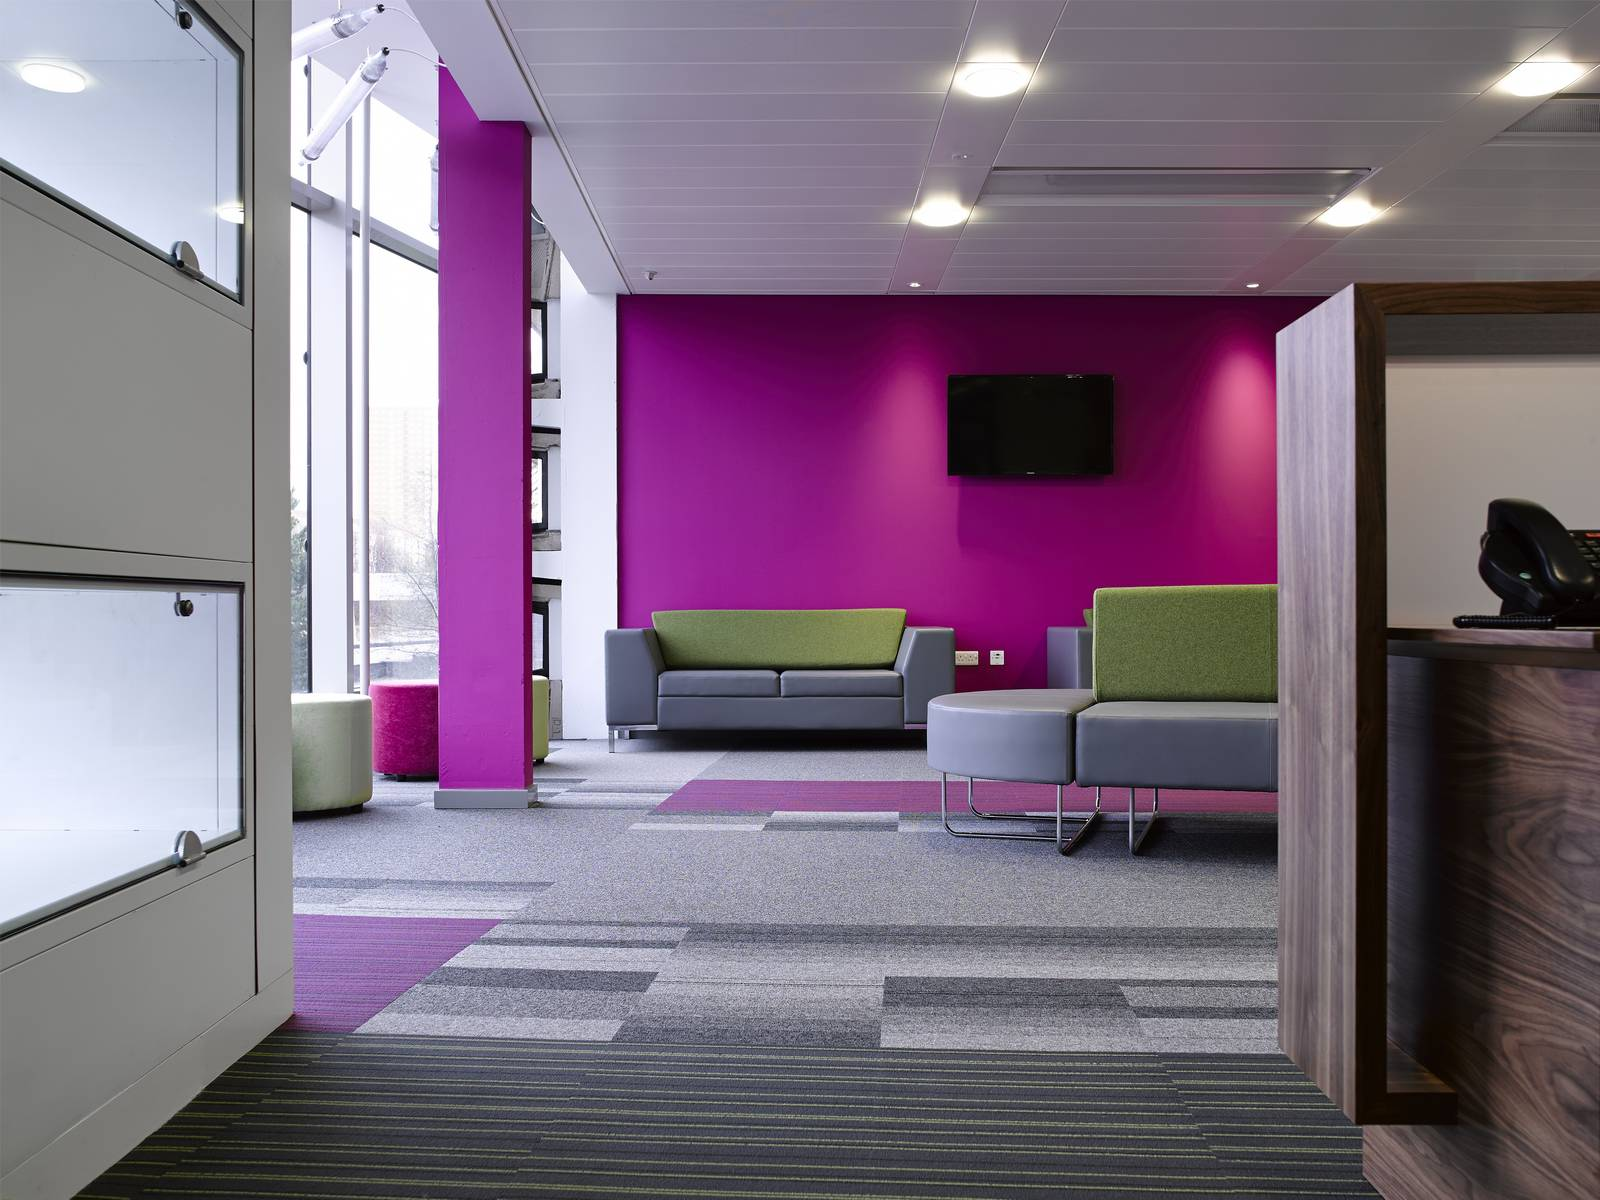 Royal Infirmary In Glasgow Gets Balance Atomic And Strands Carpet